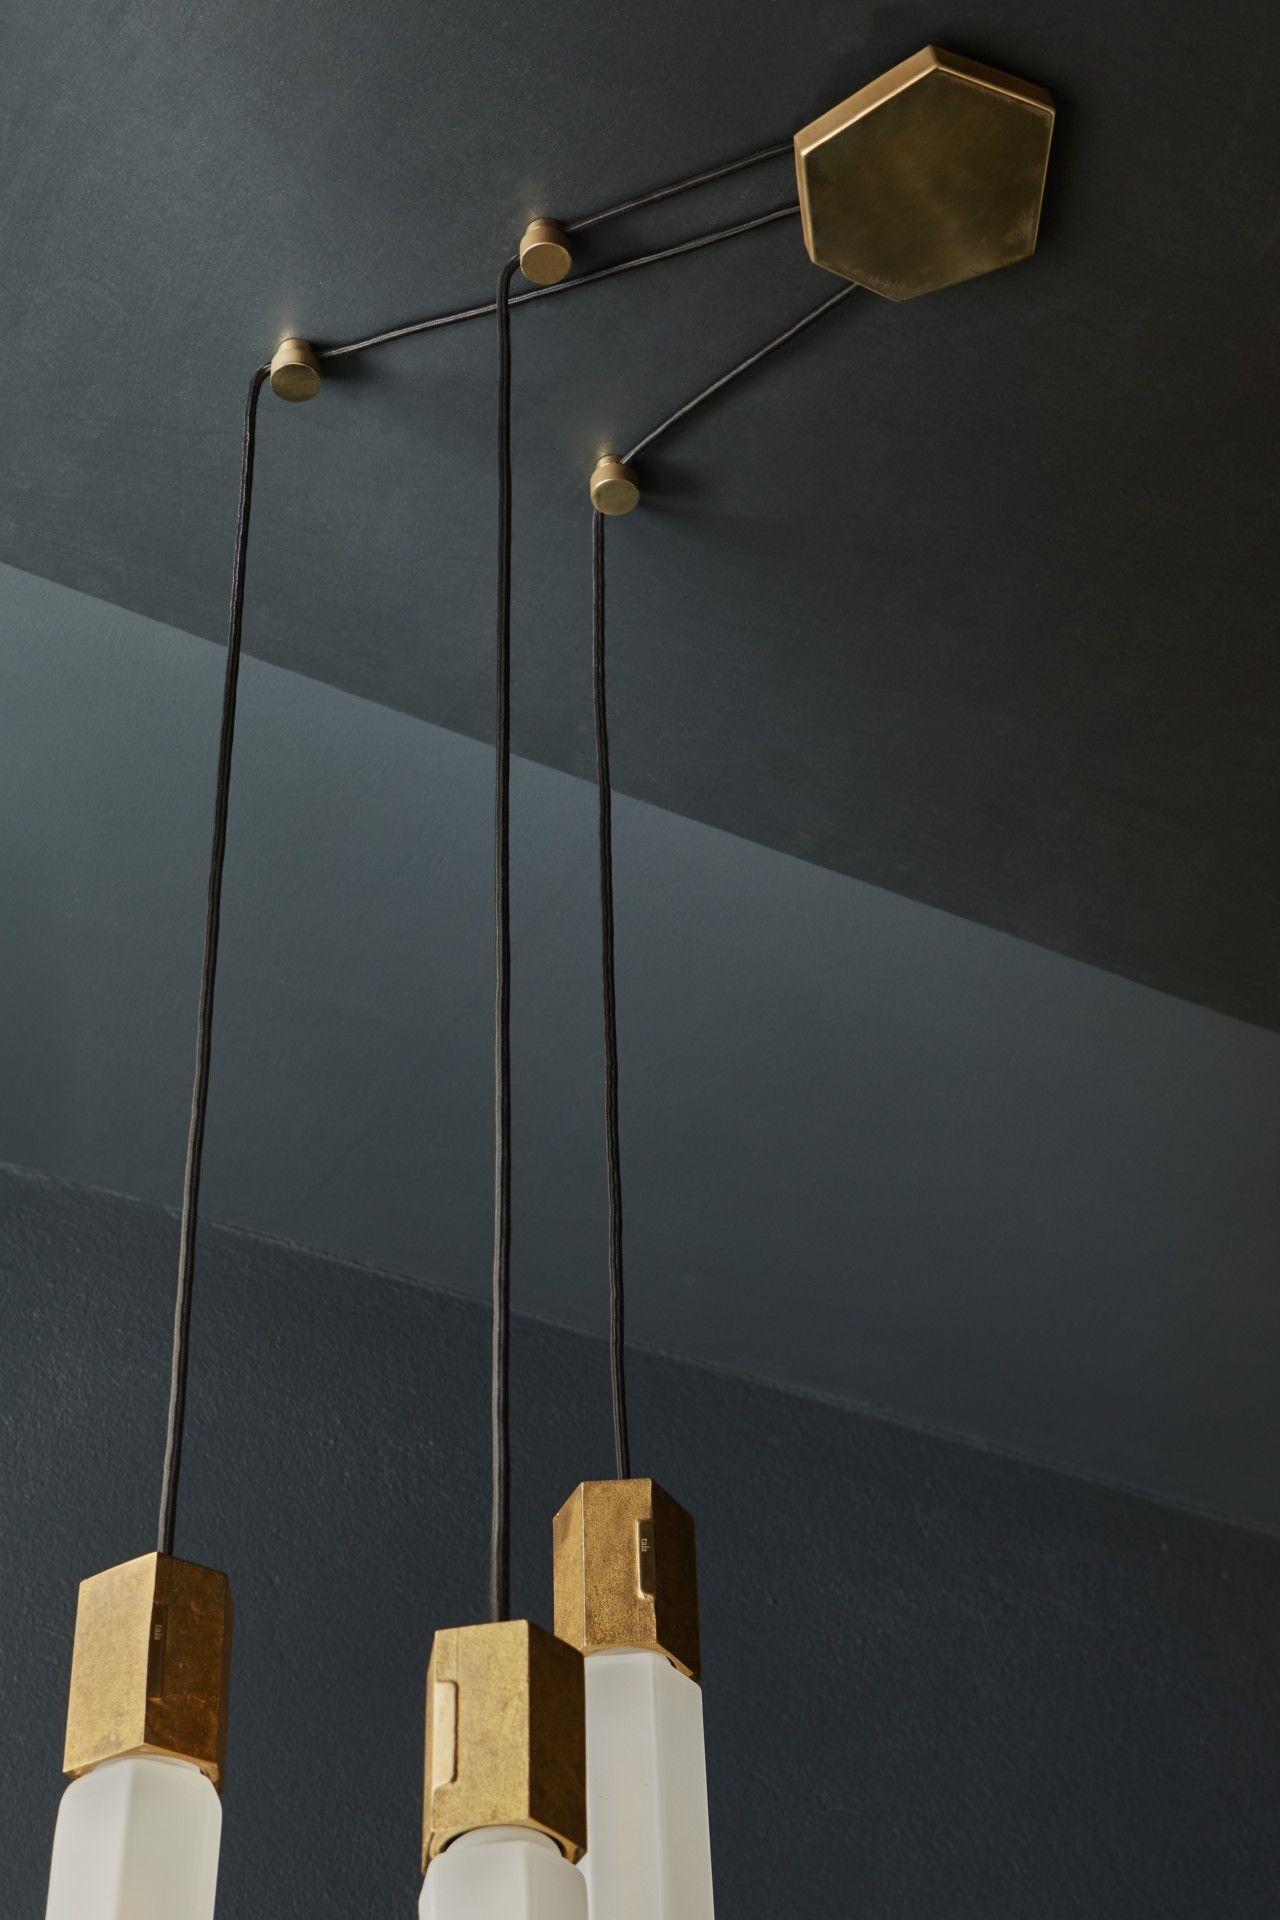 Basalt a modular lighting system by tala inspired by rock formations in ireland design milk